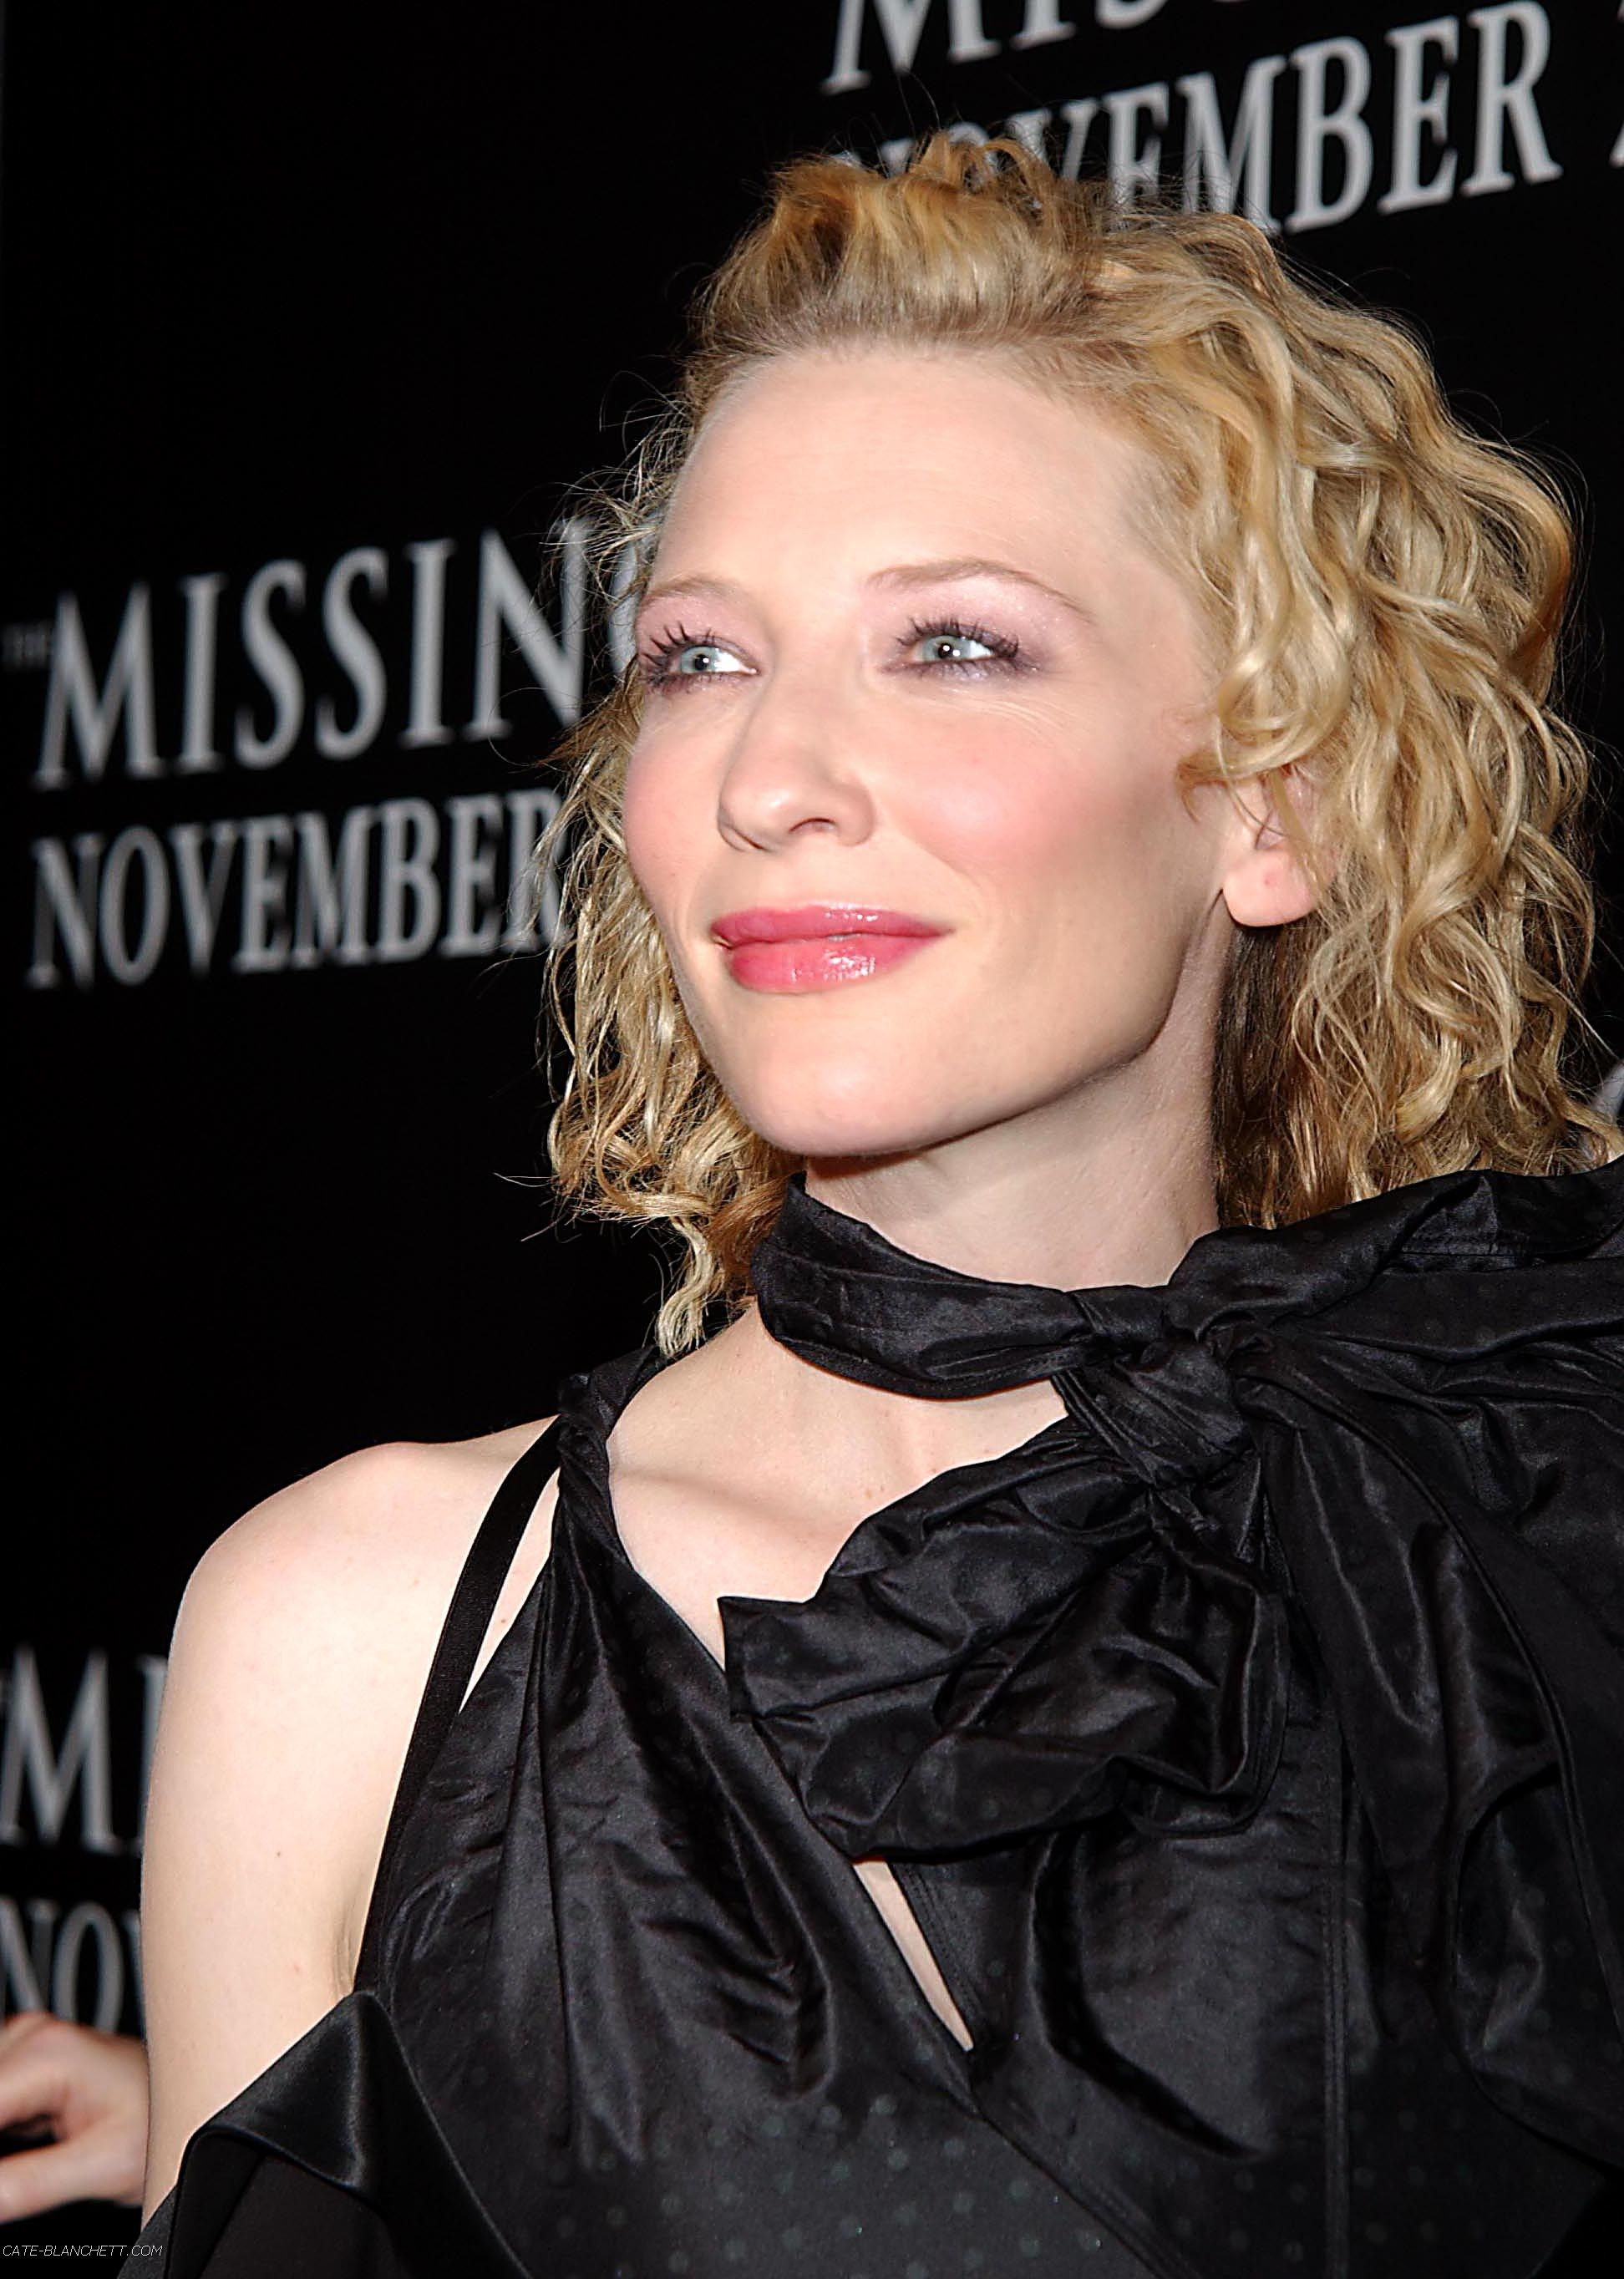 The Missing New York Premiere November 16th, 2003 072